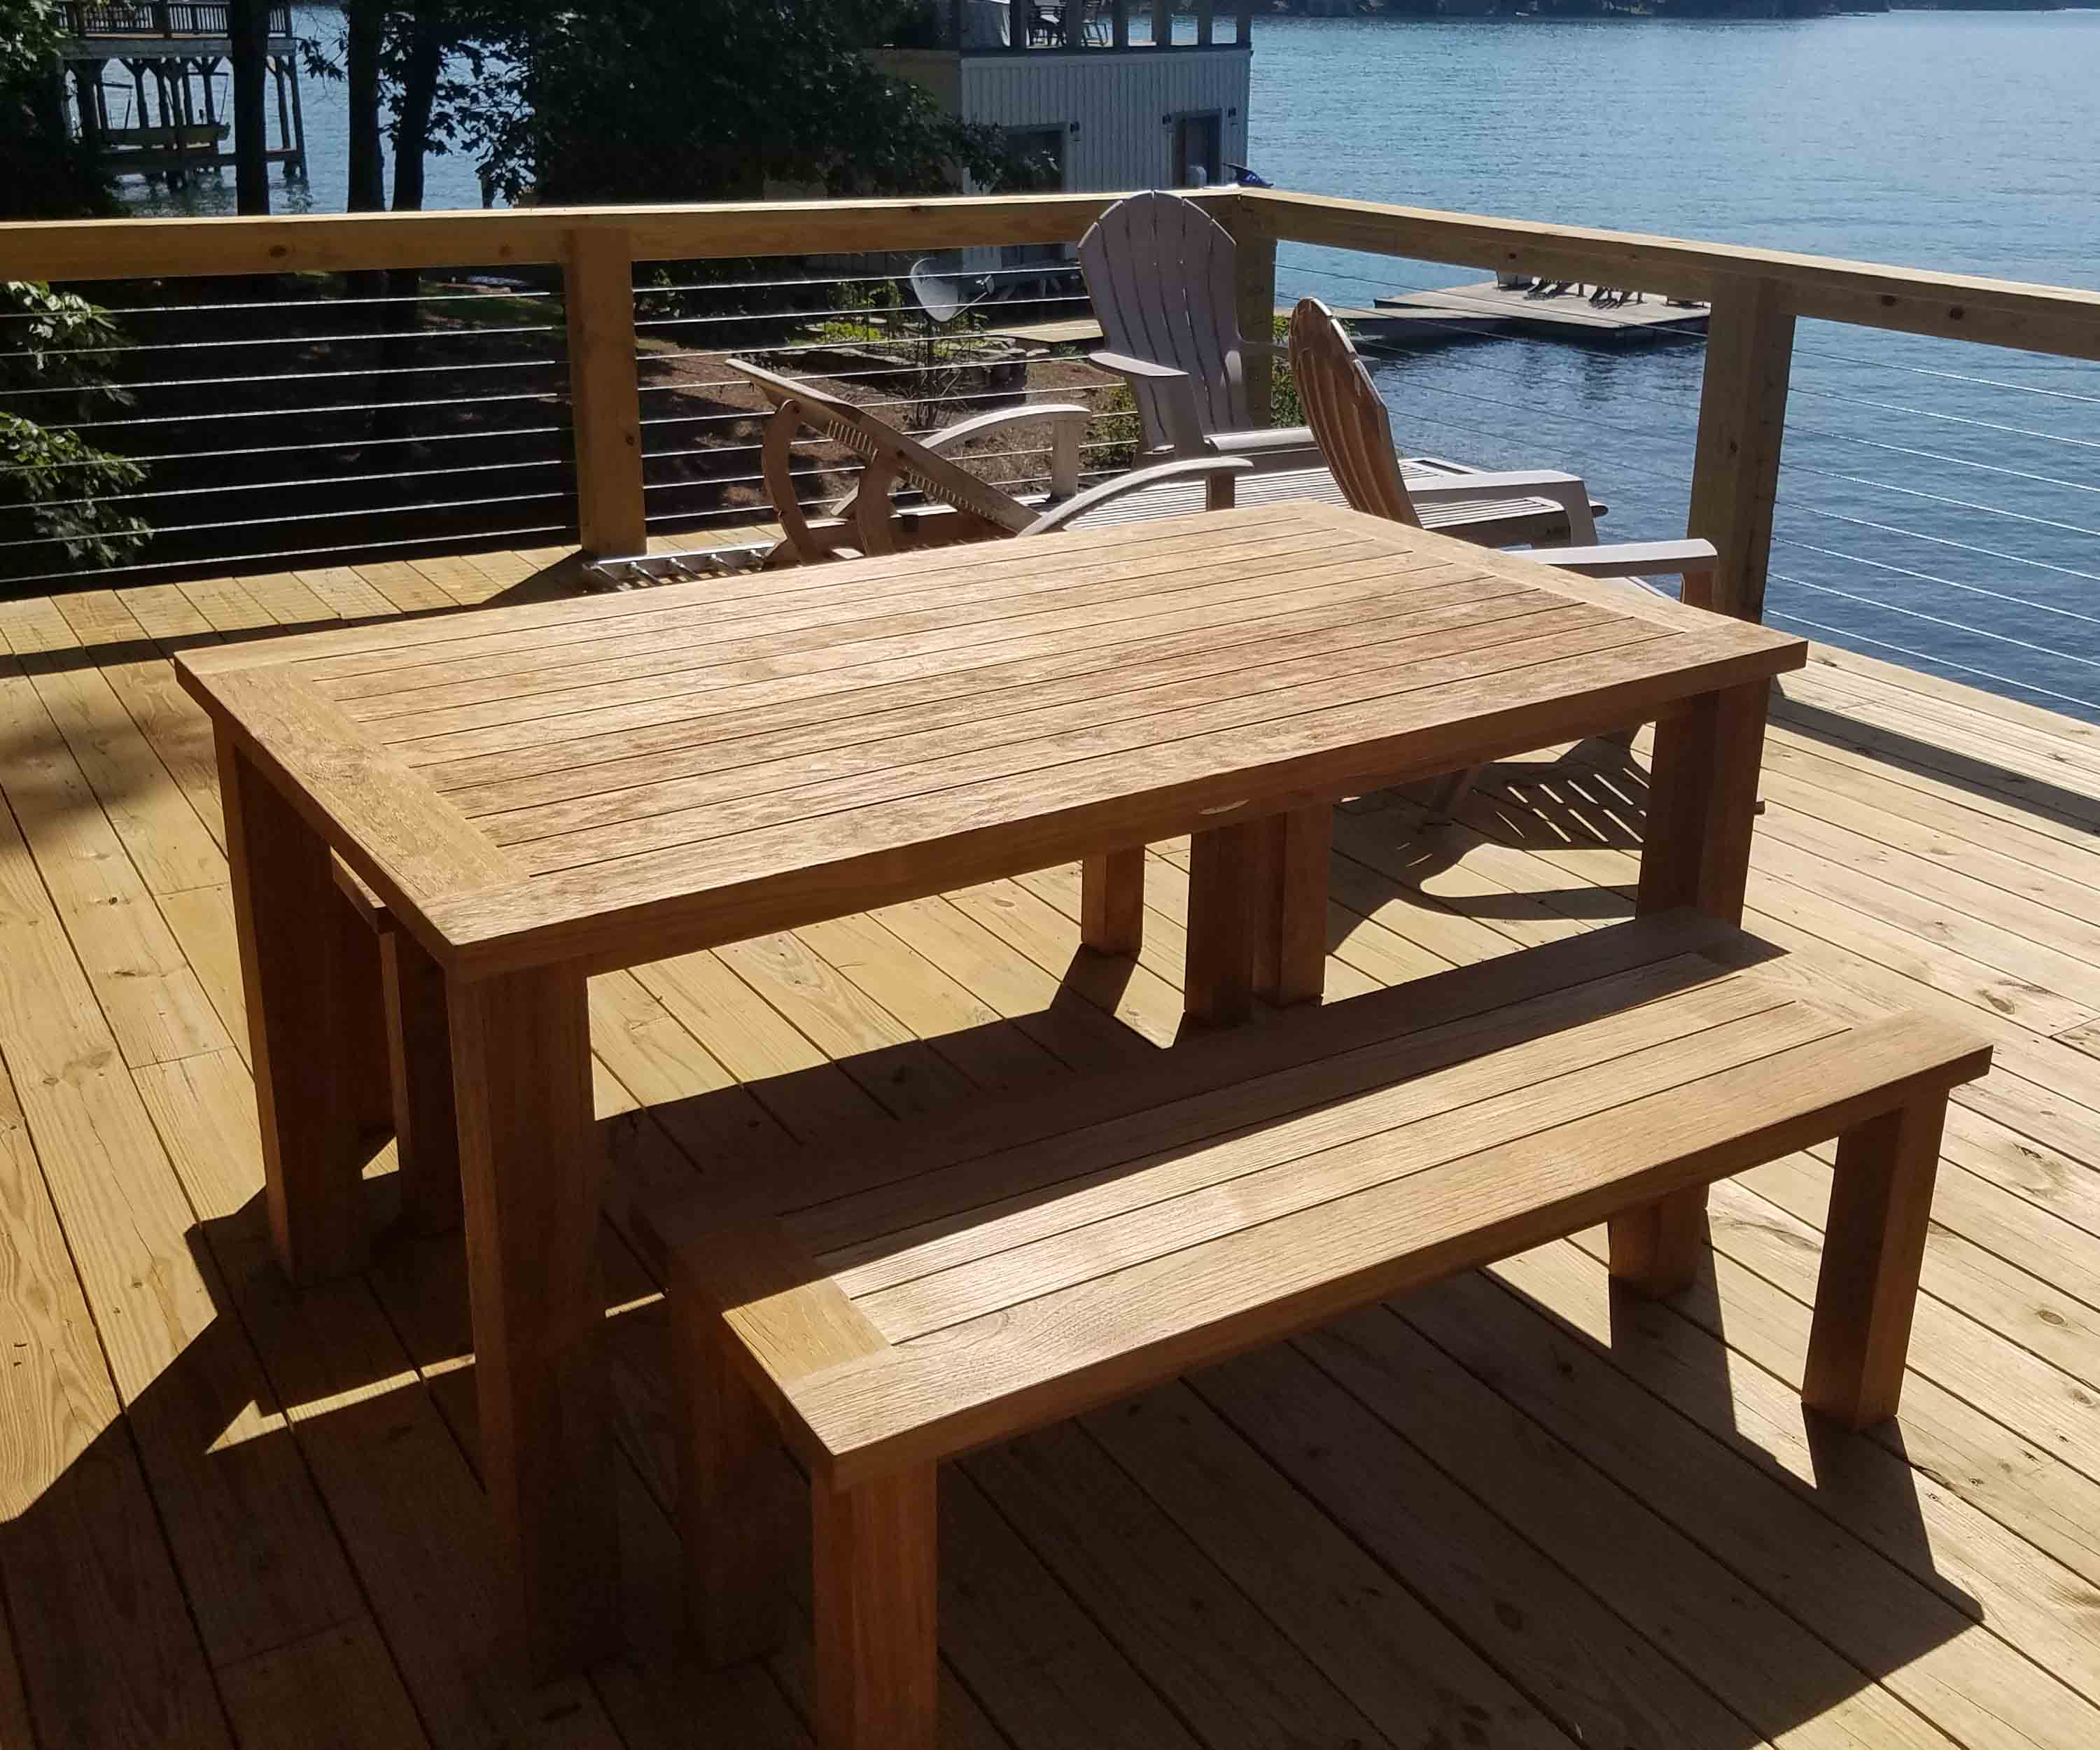 Reclaimed teak table and benches